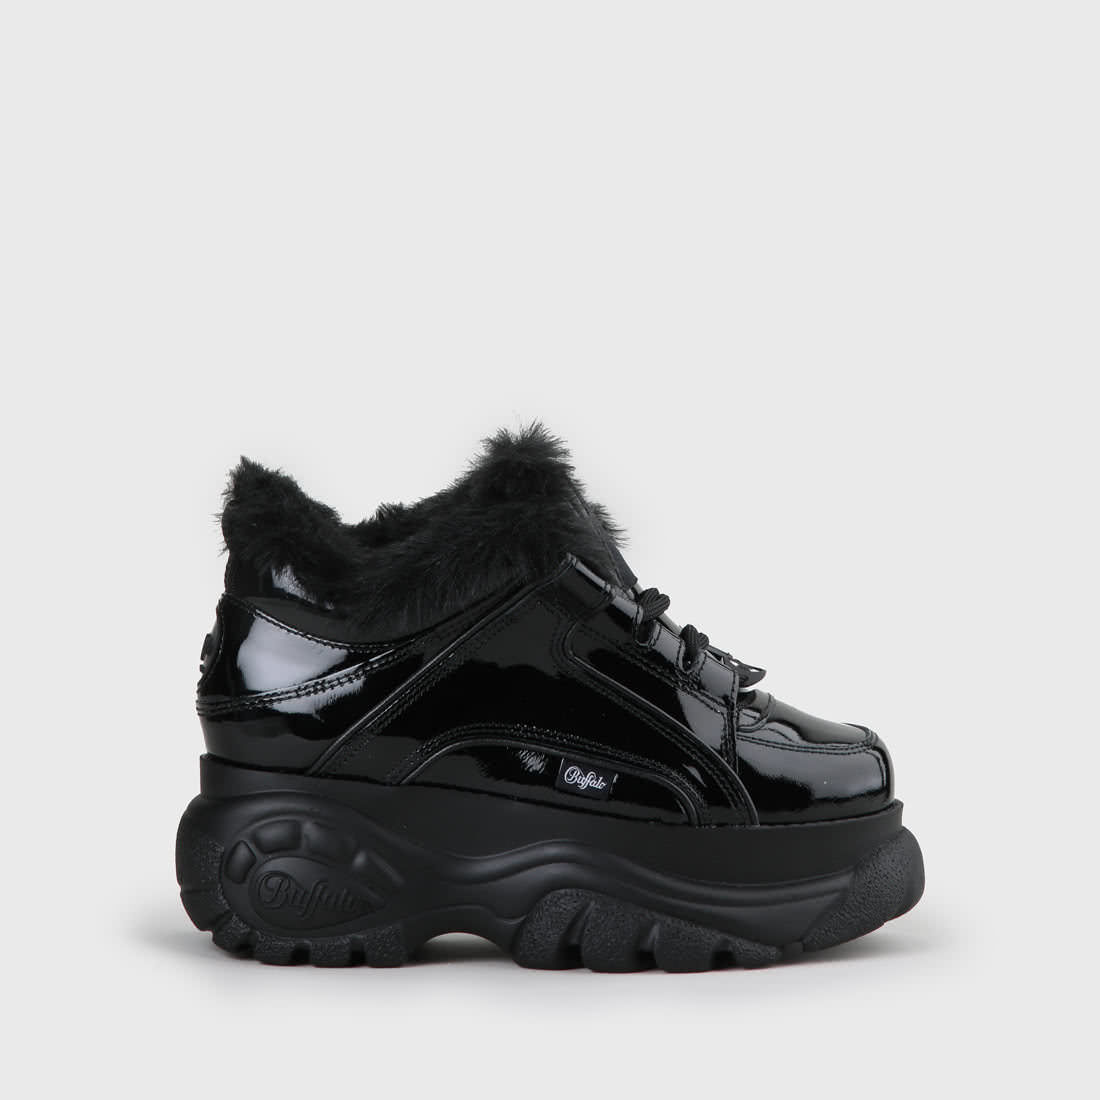 first look shop authorized site Buffalo Classic Platform Sneaker Patent Leather Black buy online ...